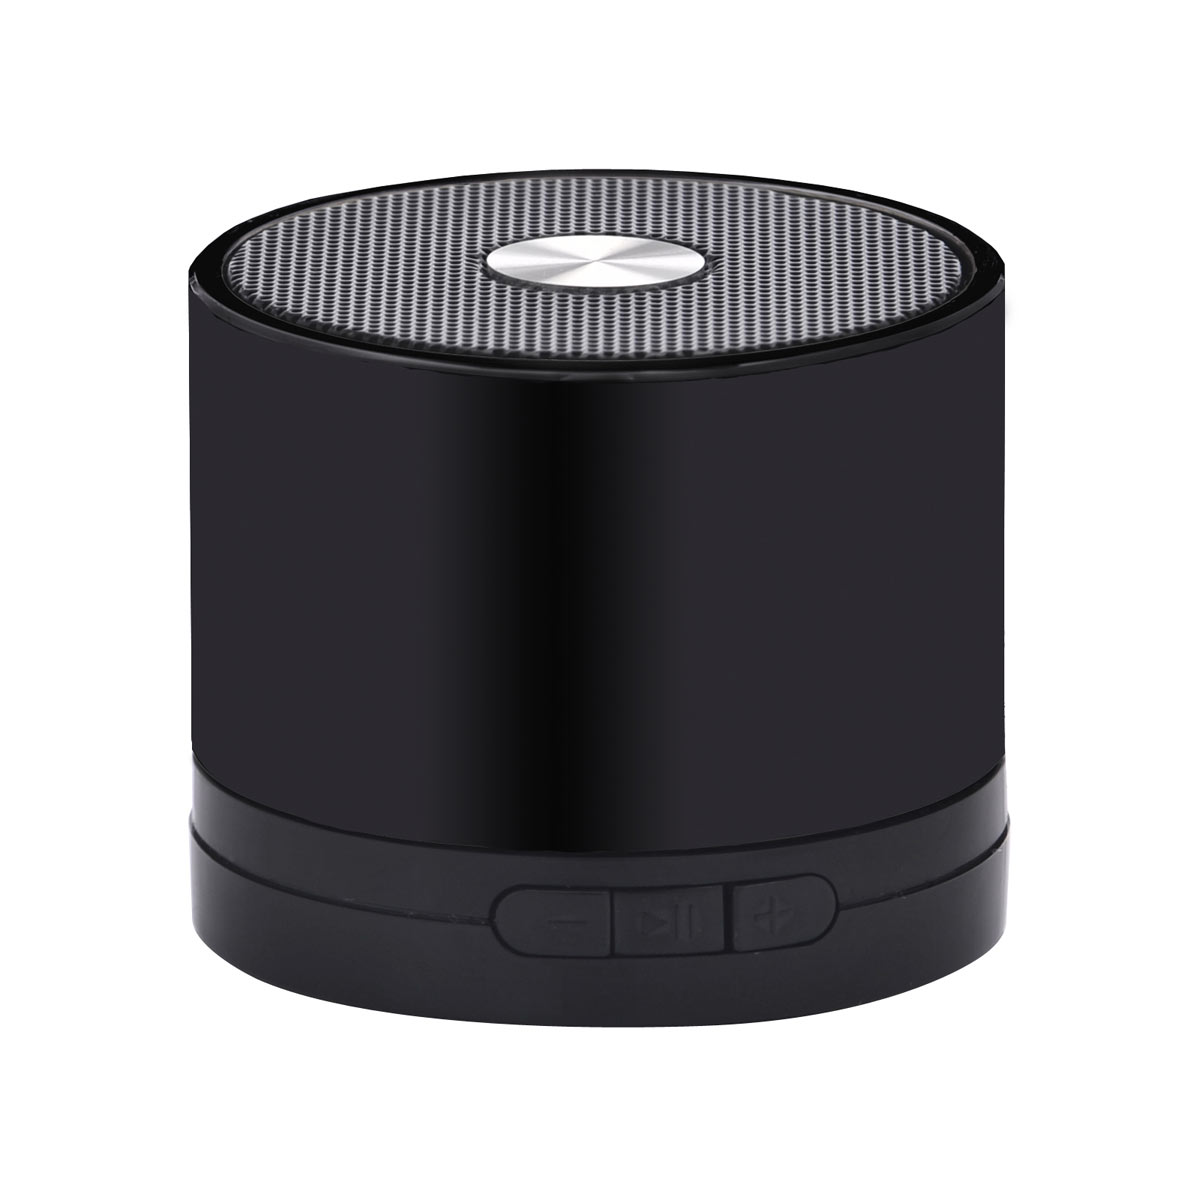 enceinte bluetooth carte sd